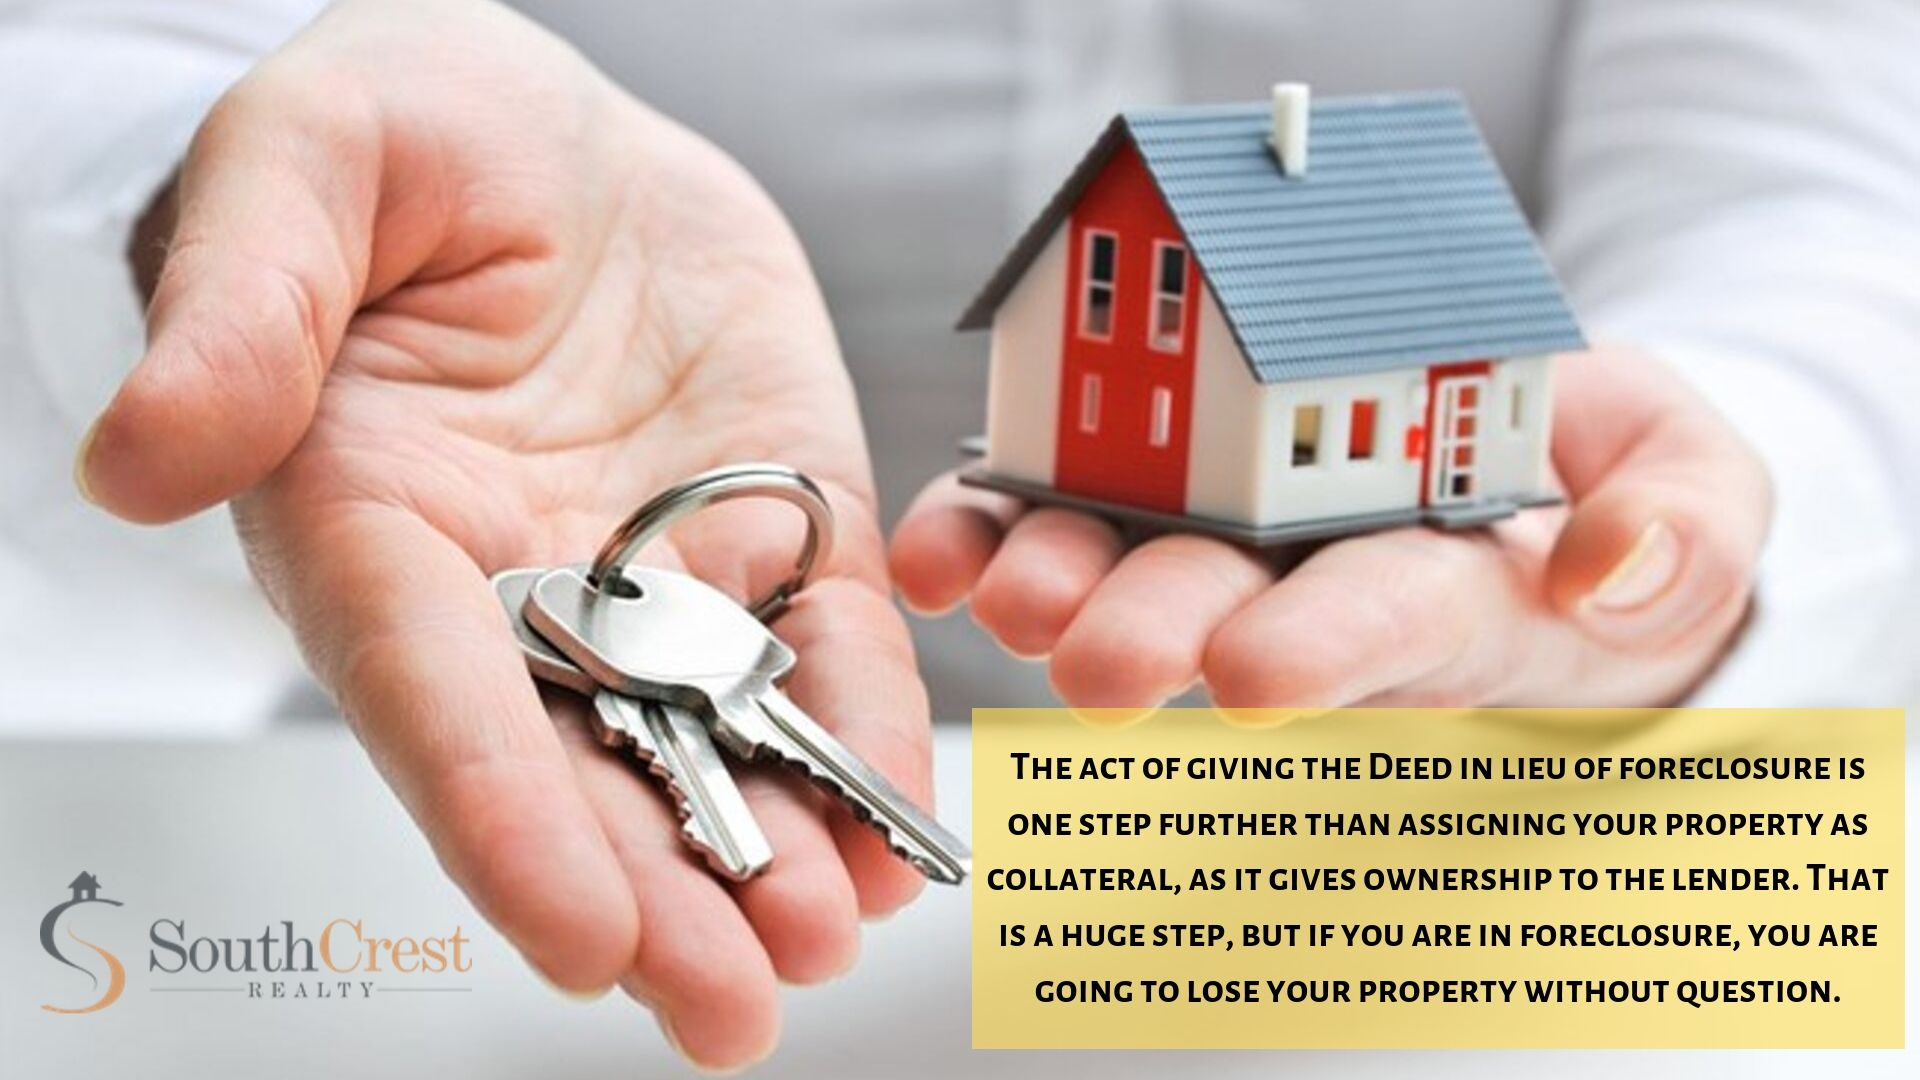 How a Deed in Lieu of Foreclosure Can Help Save Your House (and Your Credit)